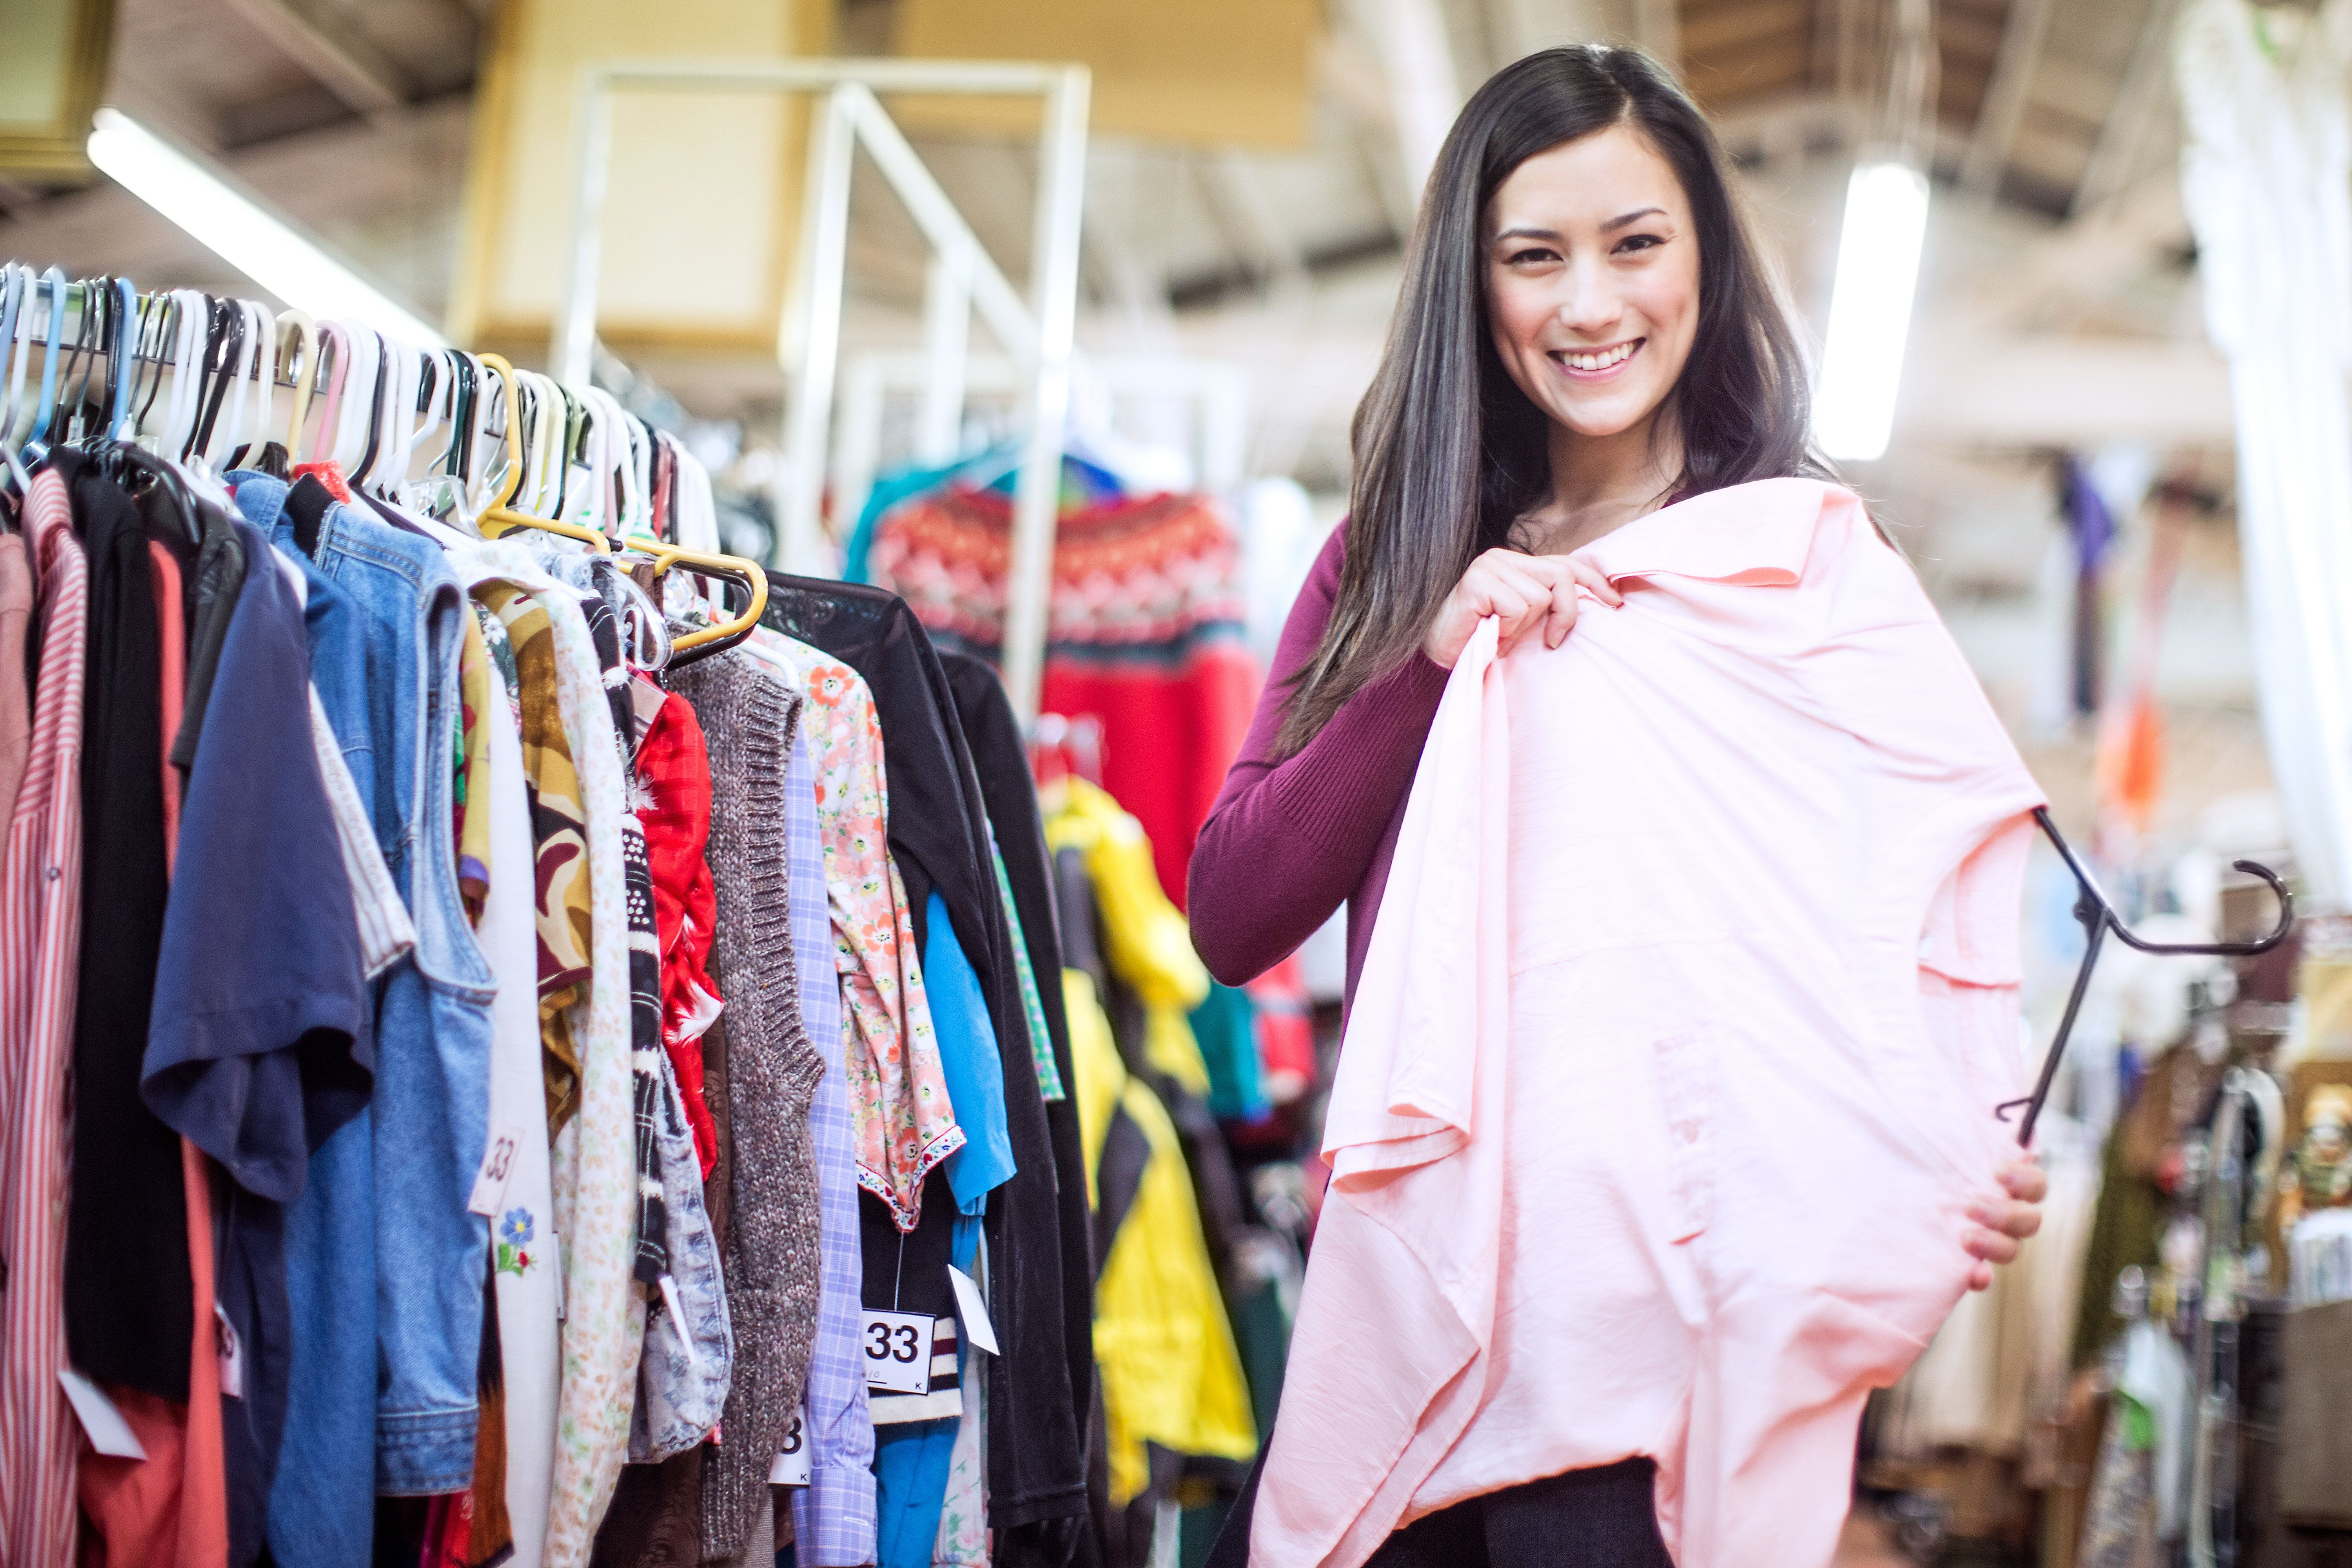 People's Sustainable Fashion Choices Are Massively Helping The